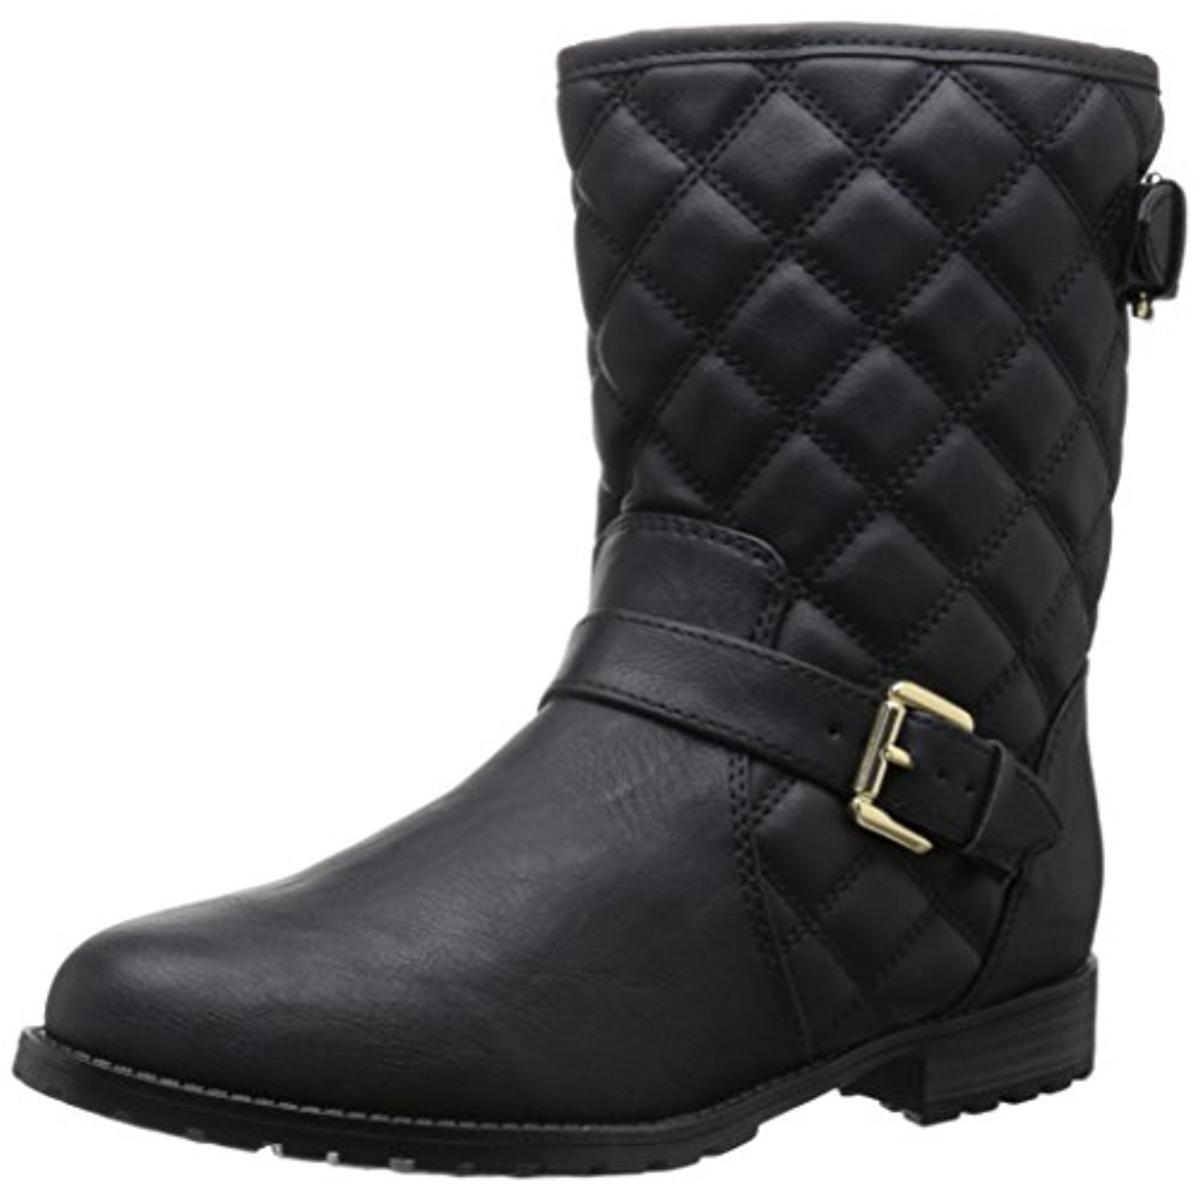 Sporto 7578 Womens Judy Faux Leather Quilted Ankle Winter Boots